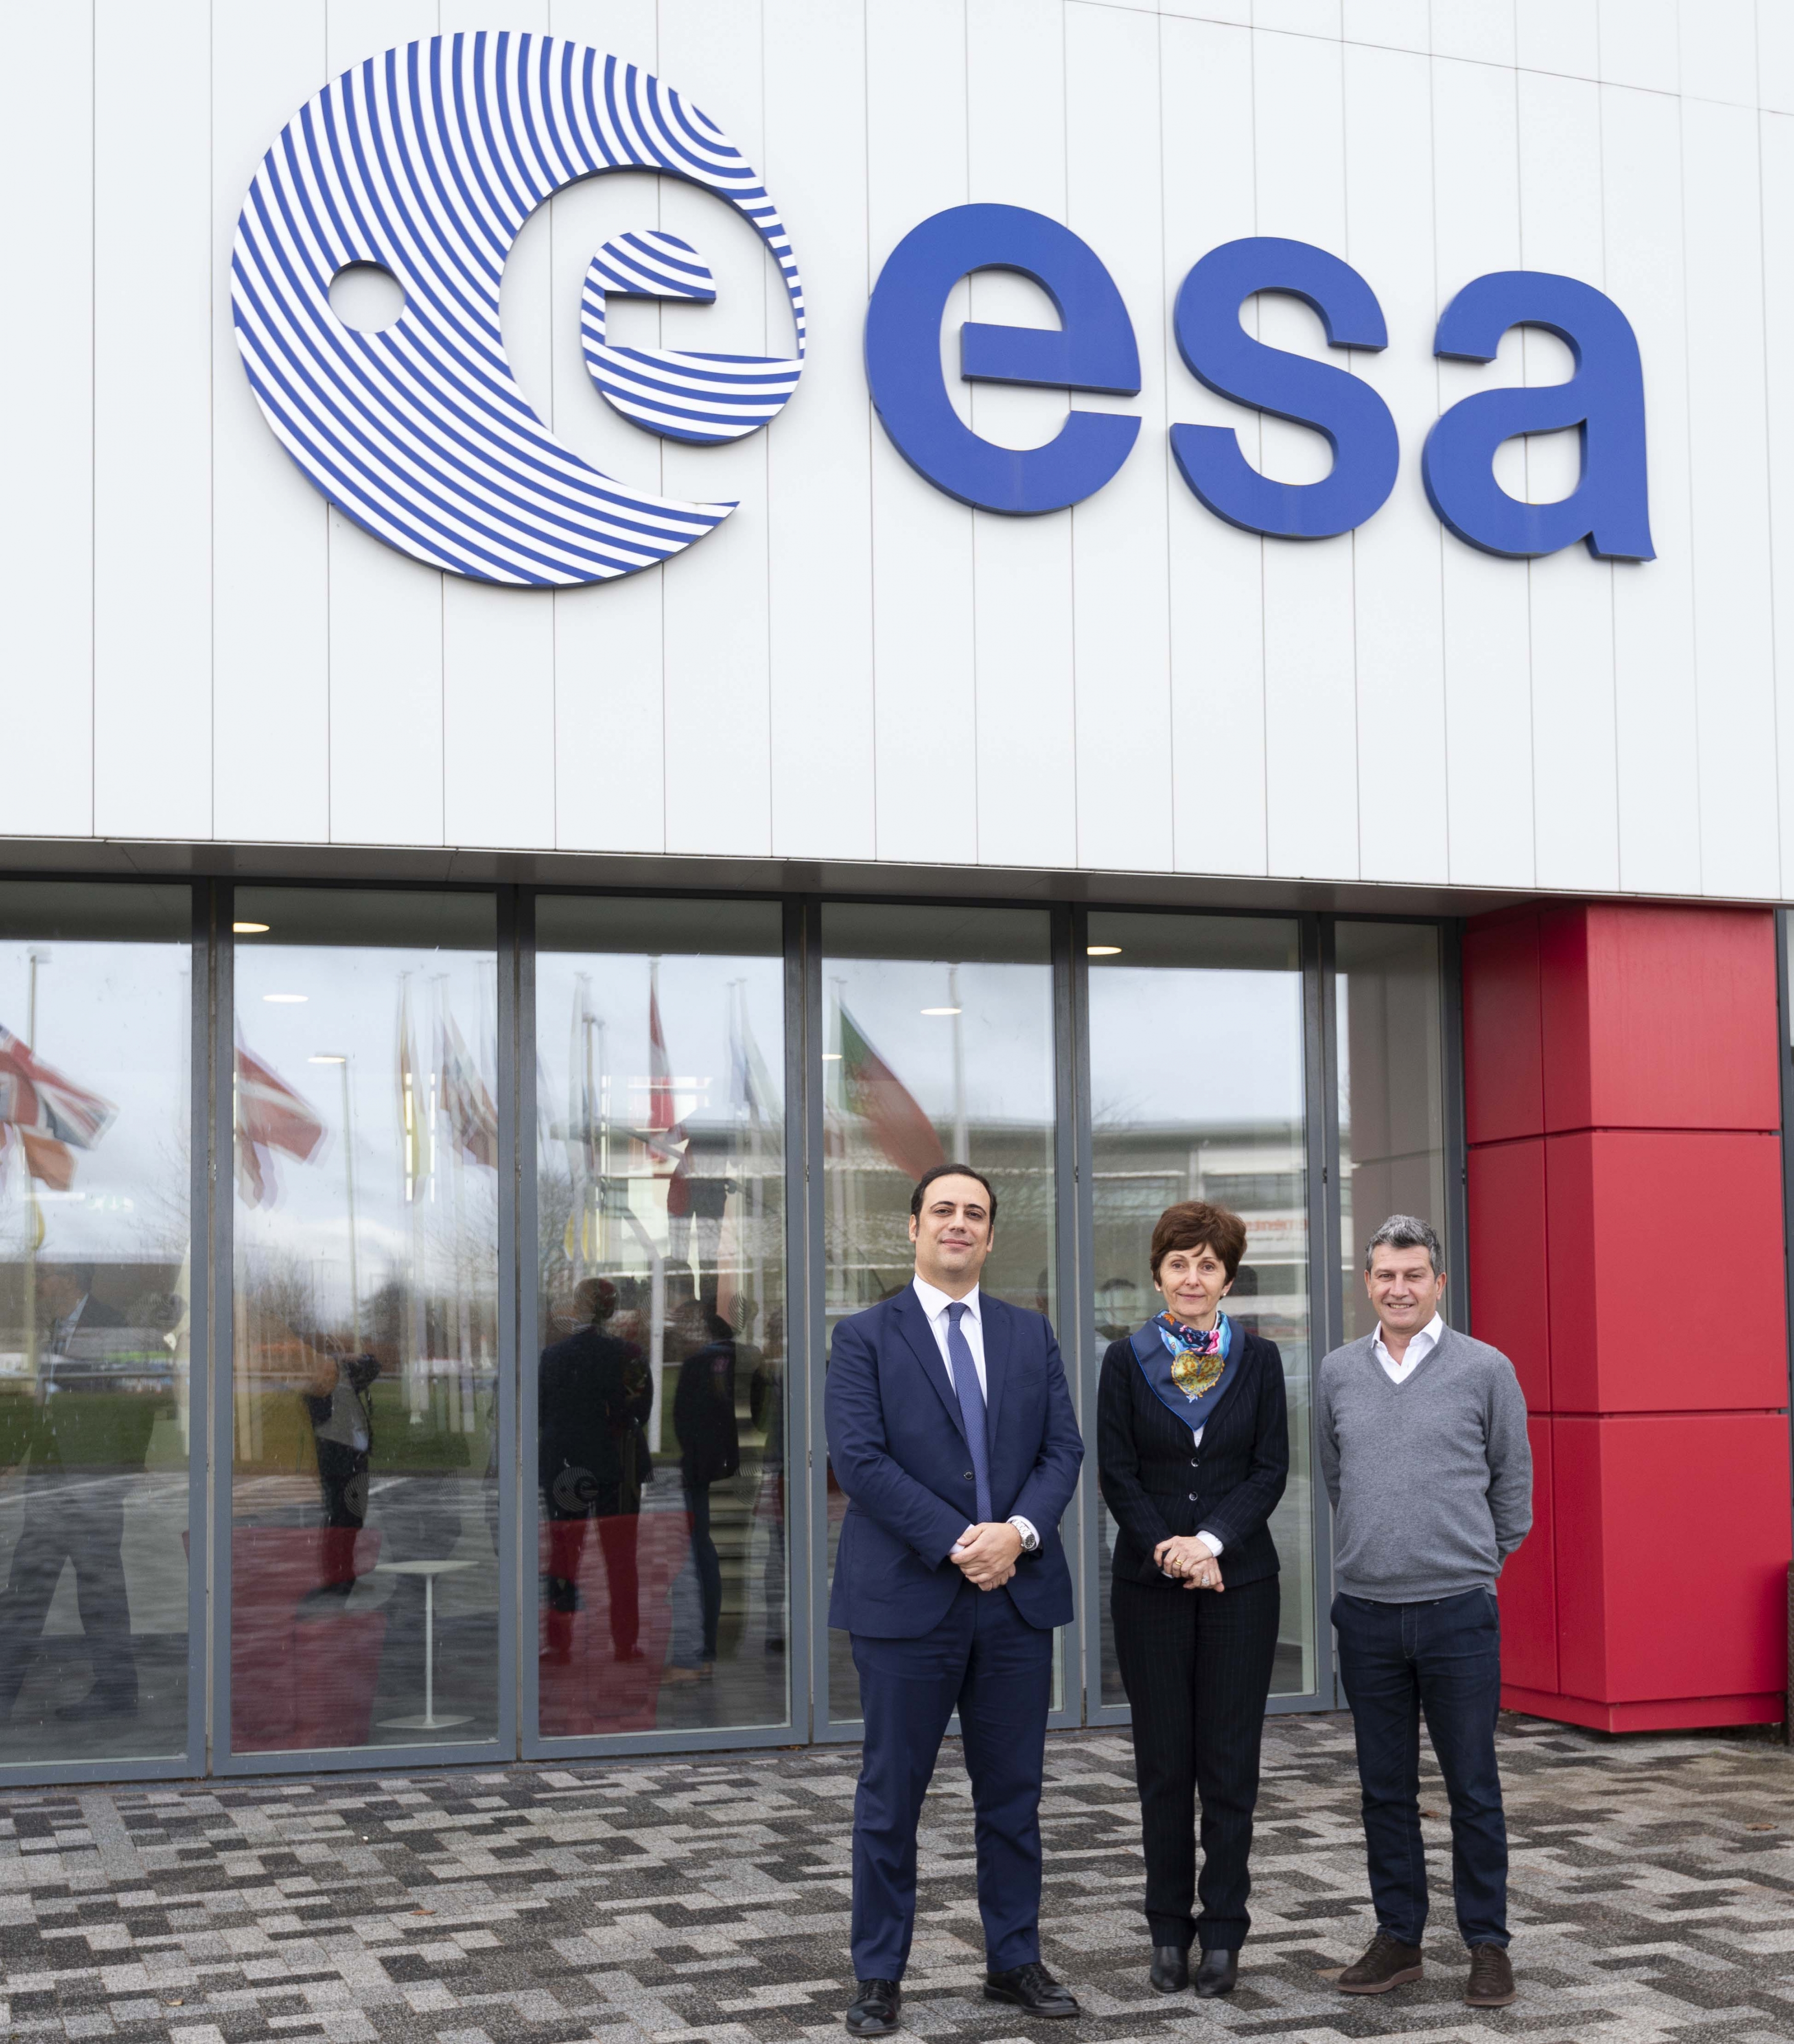 Letter of Intention signing at ECSAT. From left to right: ESA Lorenzo Scatena, Managing Director, Fondazione E. Amaldi, Magali Vaissiere, Director of Telecommunications and Integrated Applications and Gianluca Dettori, Chairman, Primomiglio SGR (Astra Ventures).